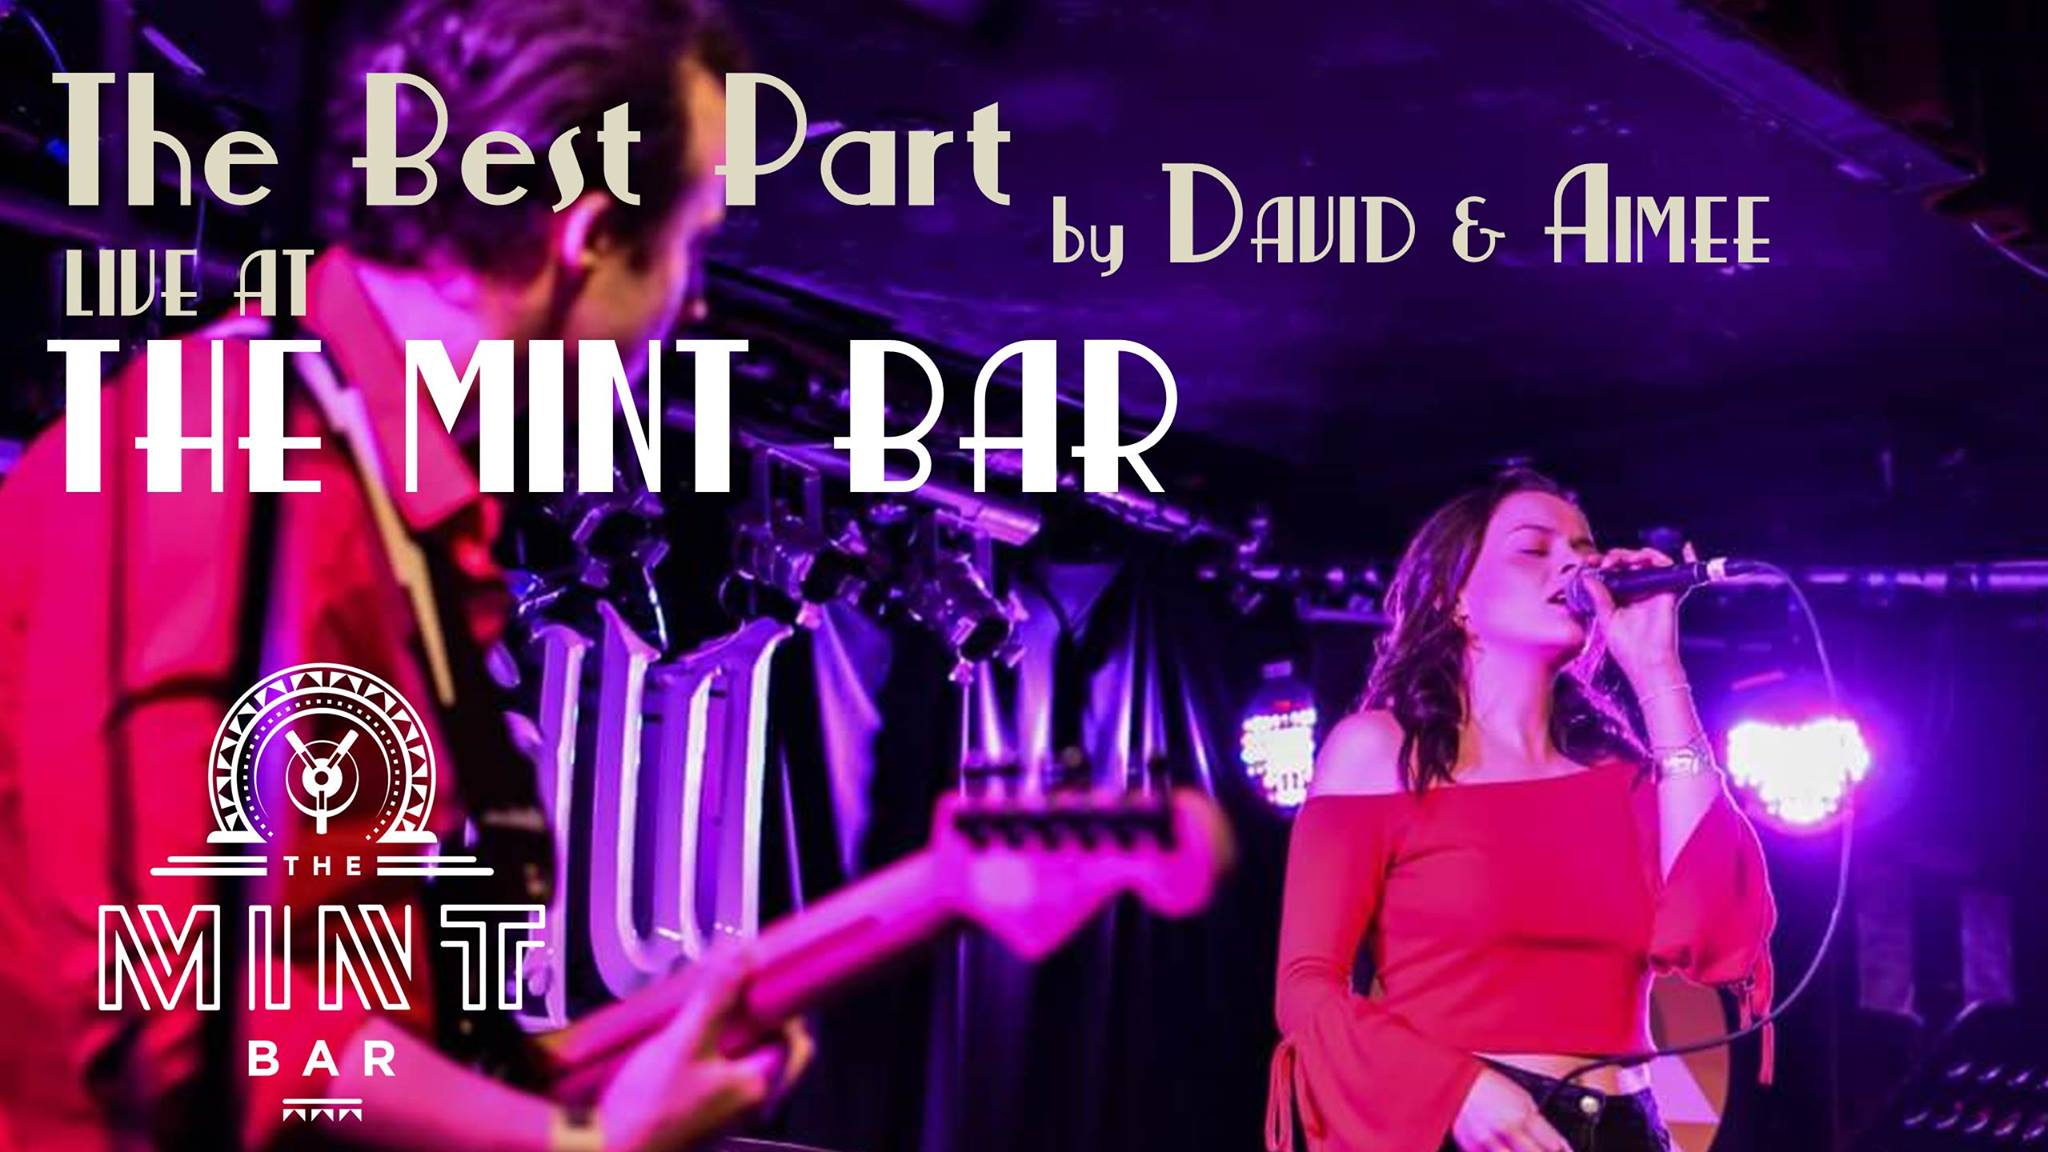 The Best Part performing live at the mint bar dublin